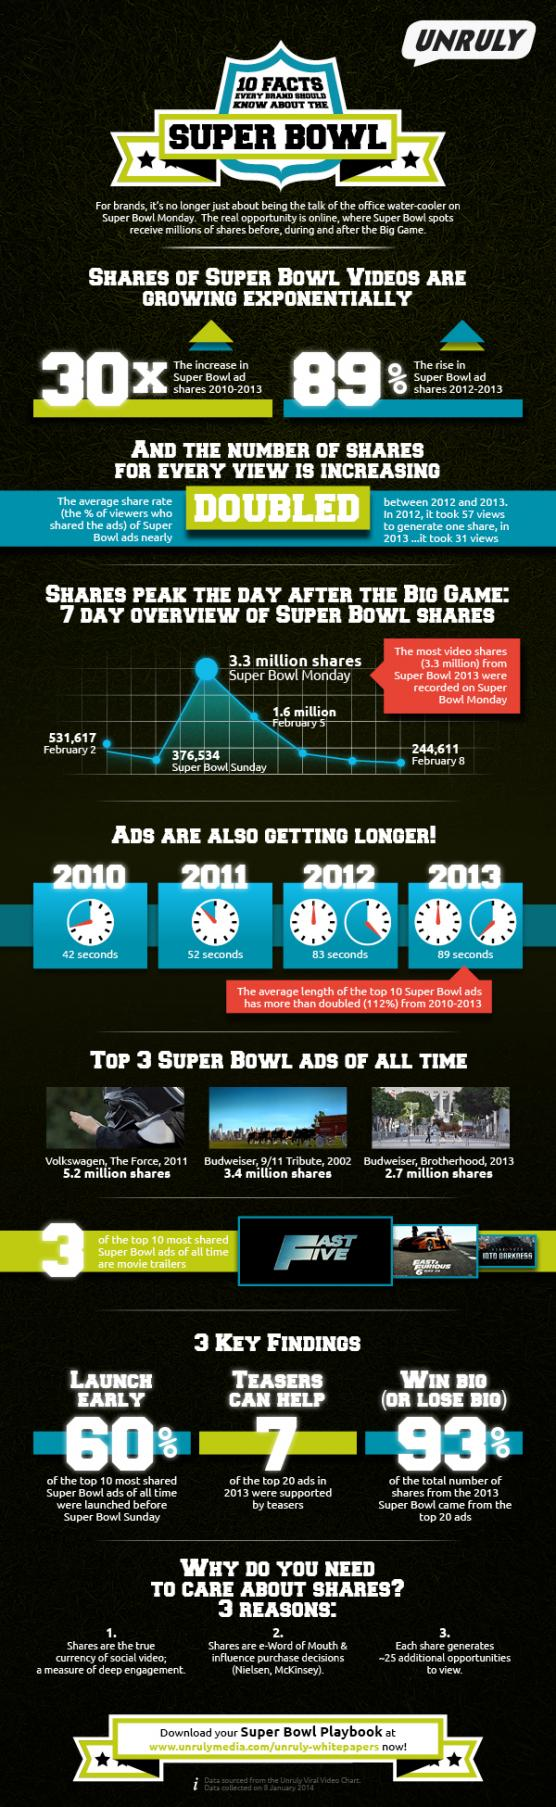 Unruly Super Bowl 2014 infographic